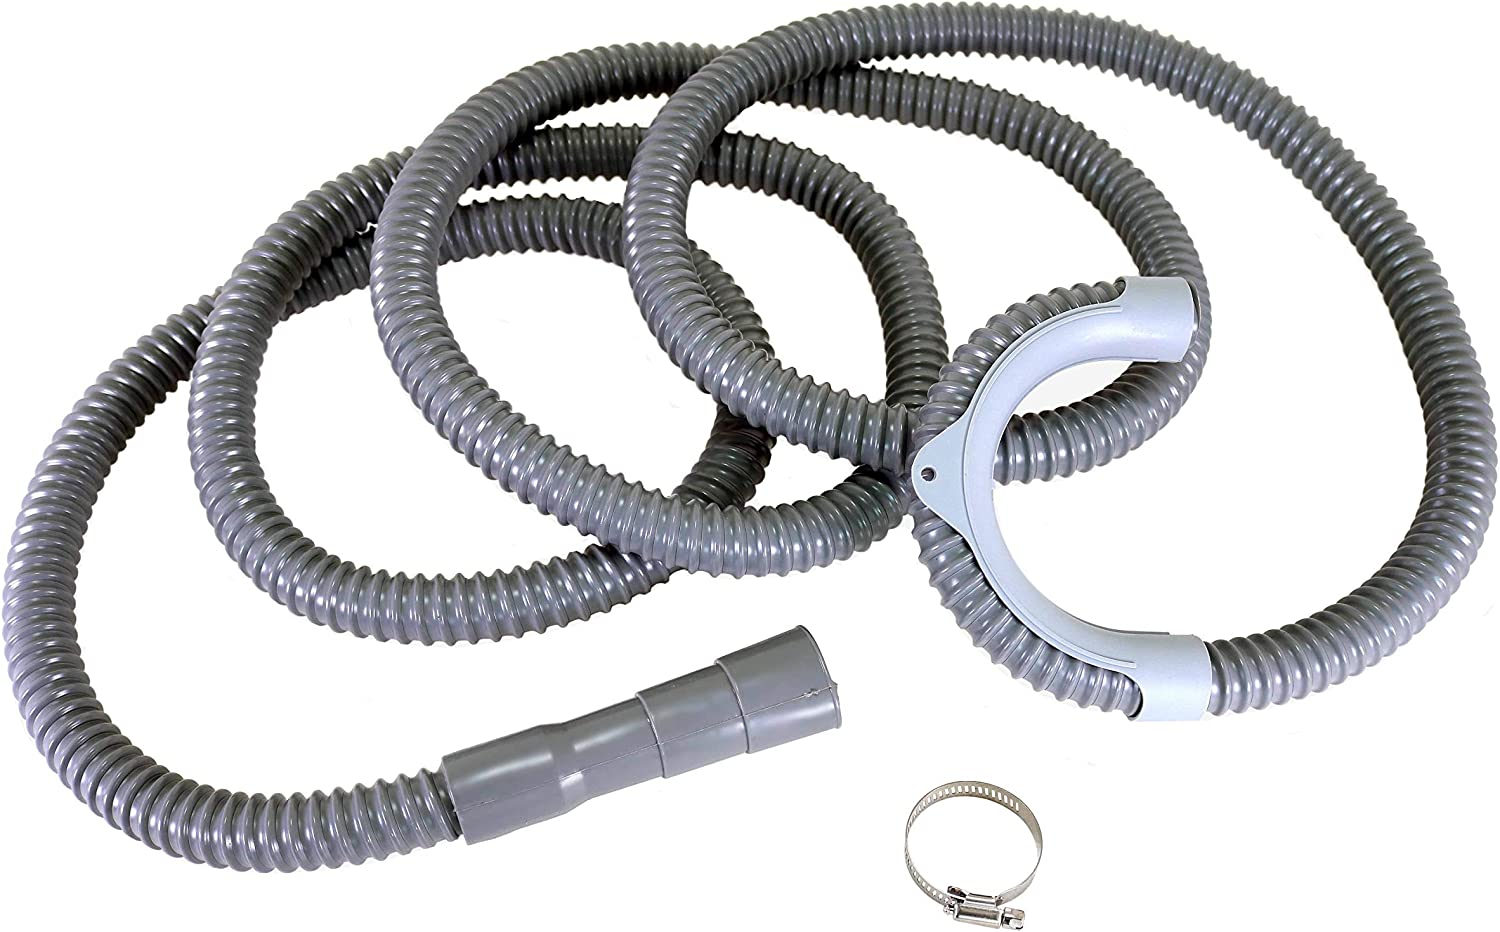 Tank Hose DN13 Stainless Steel Extension Washing Machine Hose 3//4 inch